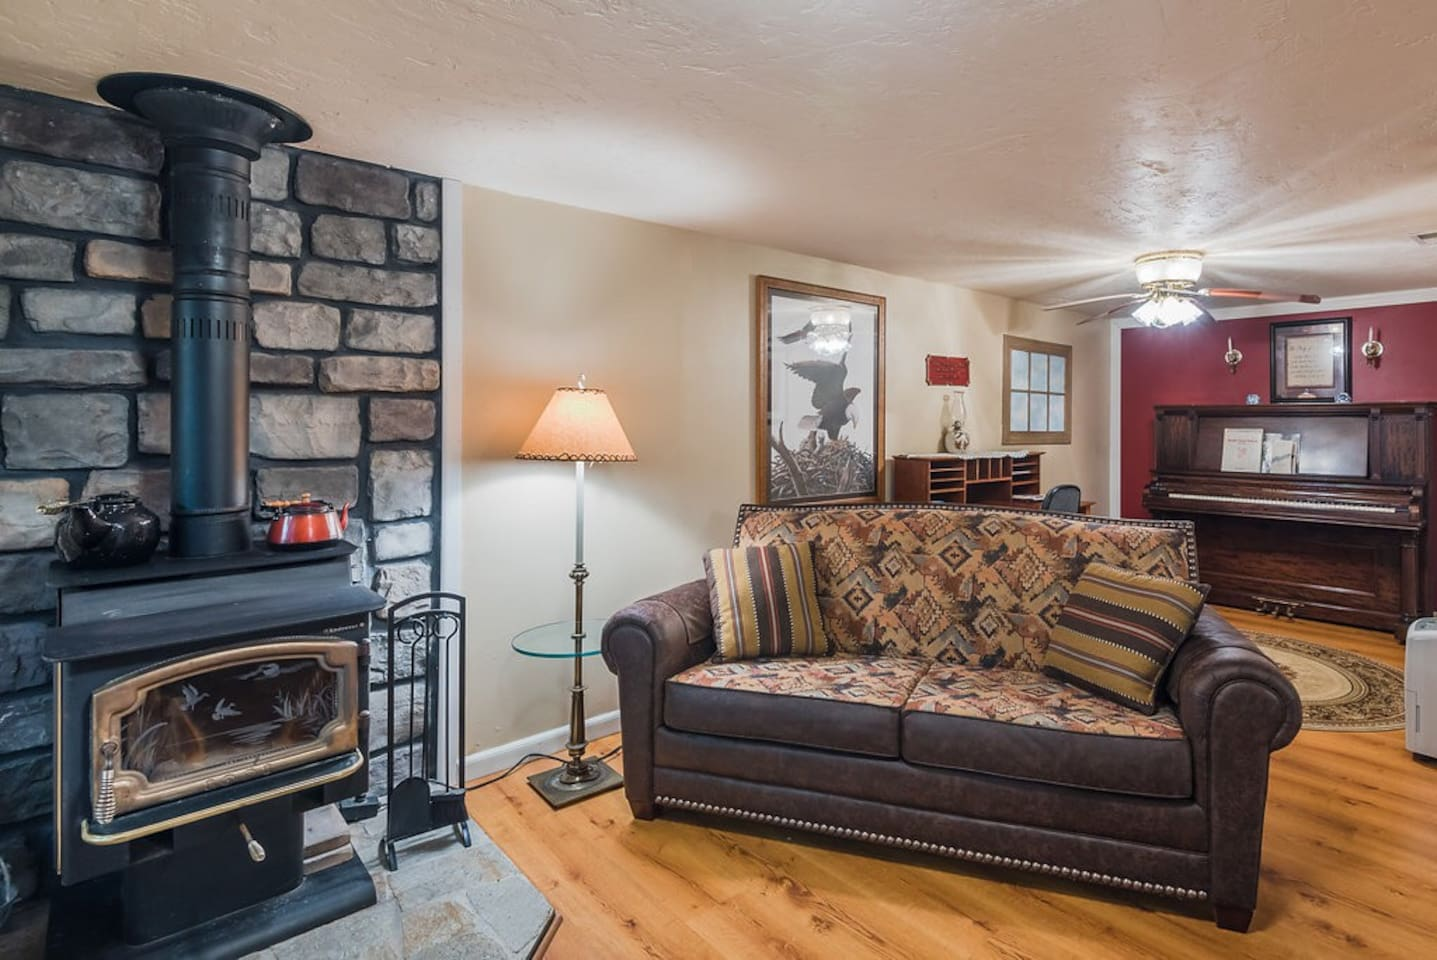 Living room area and wood stove.